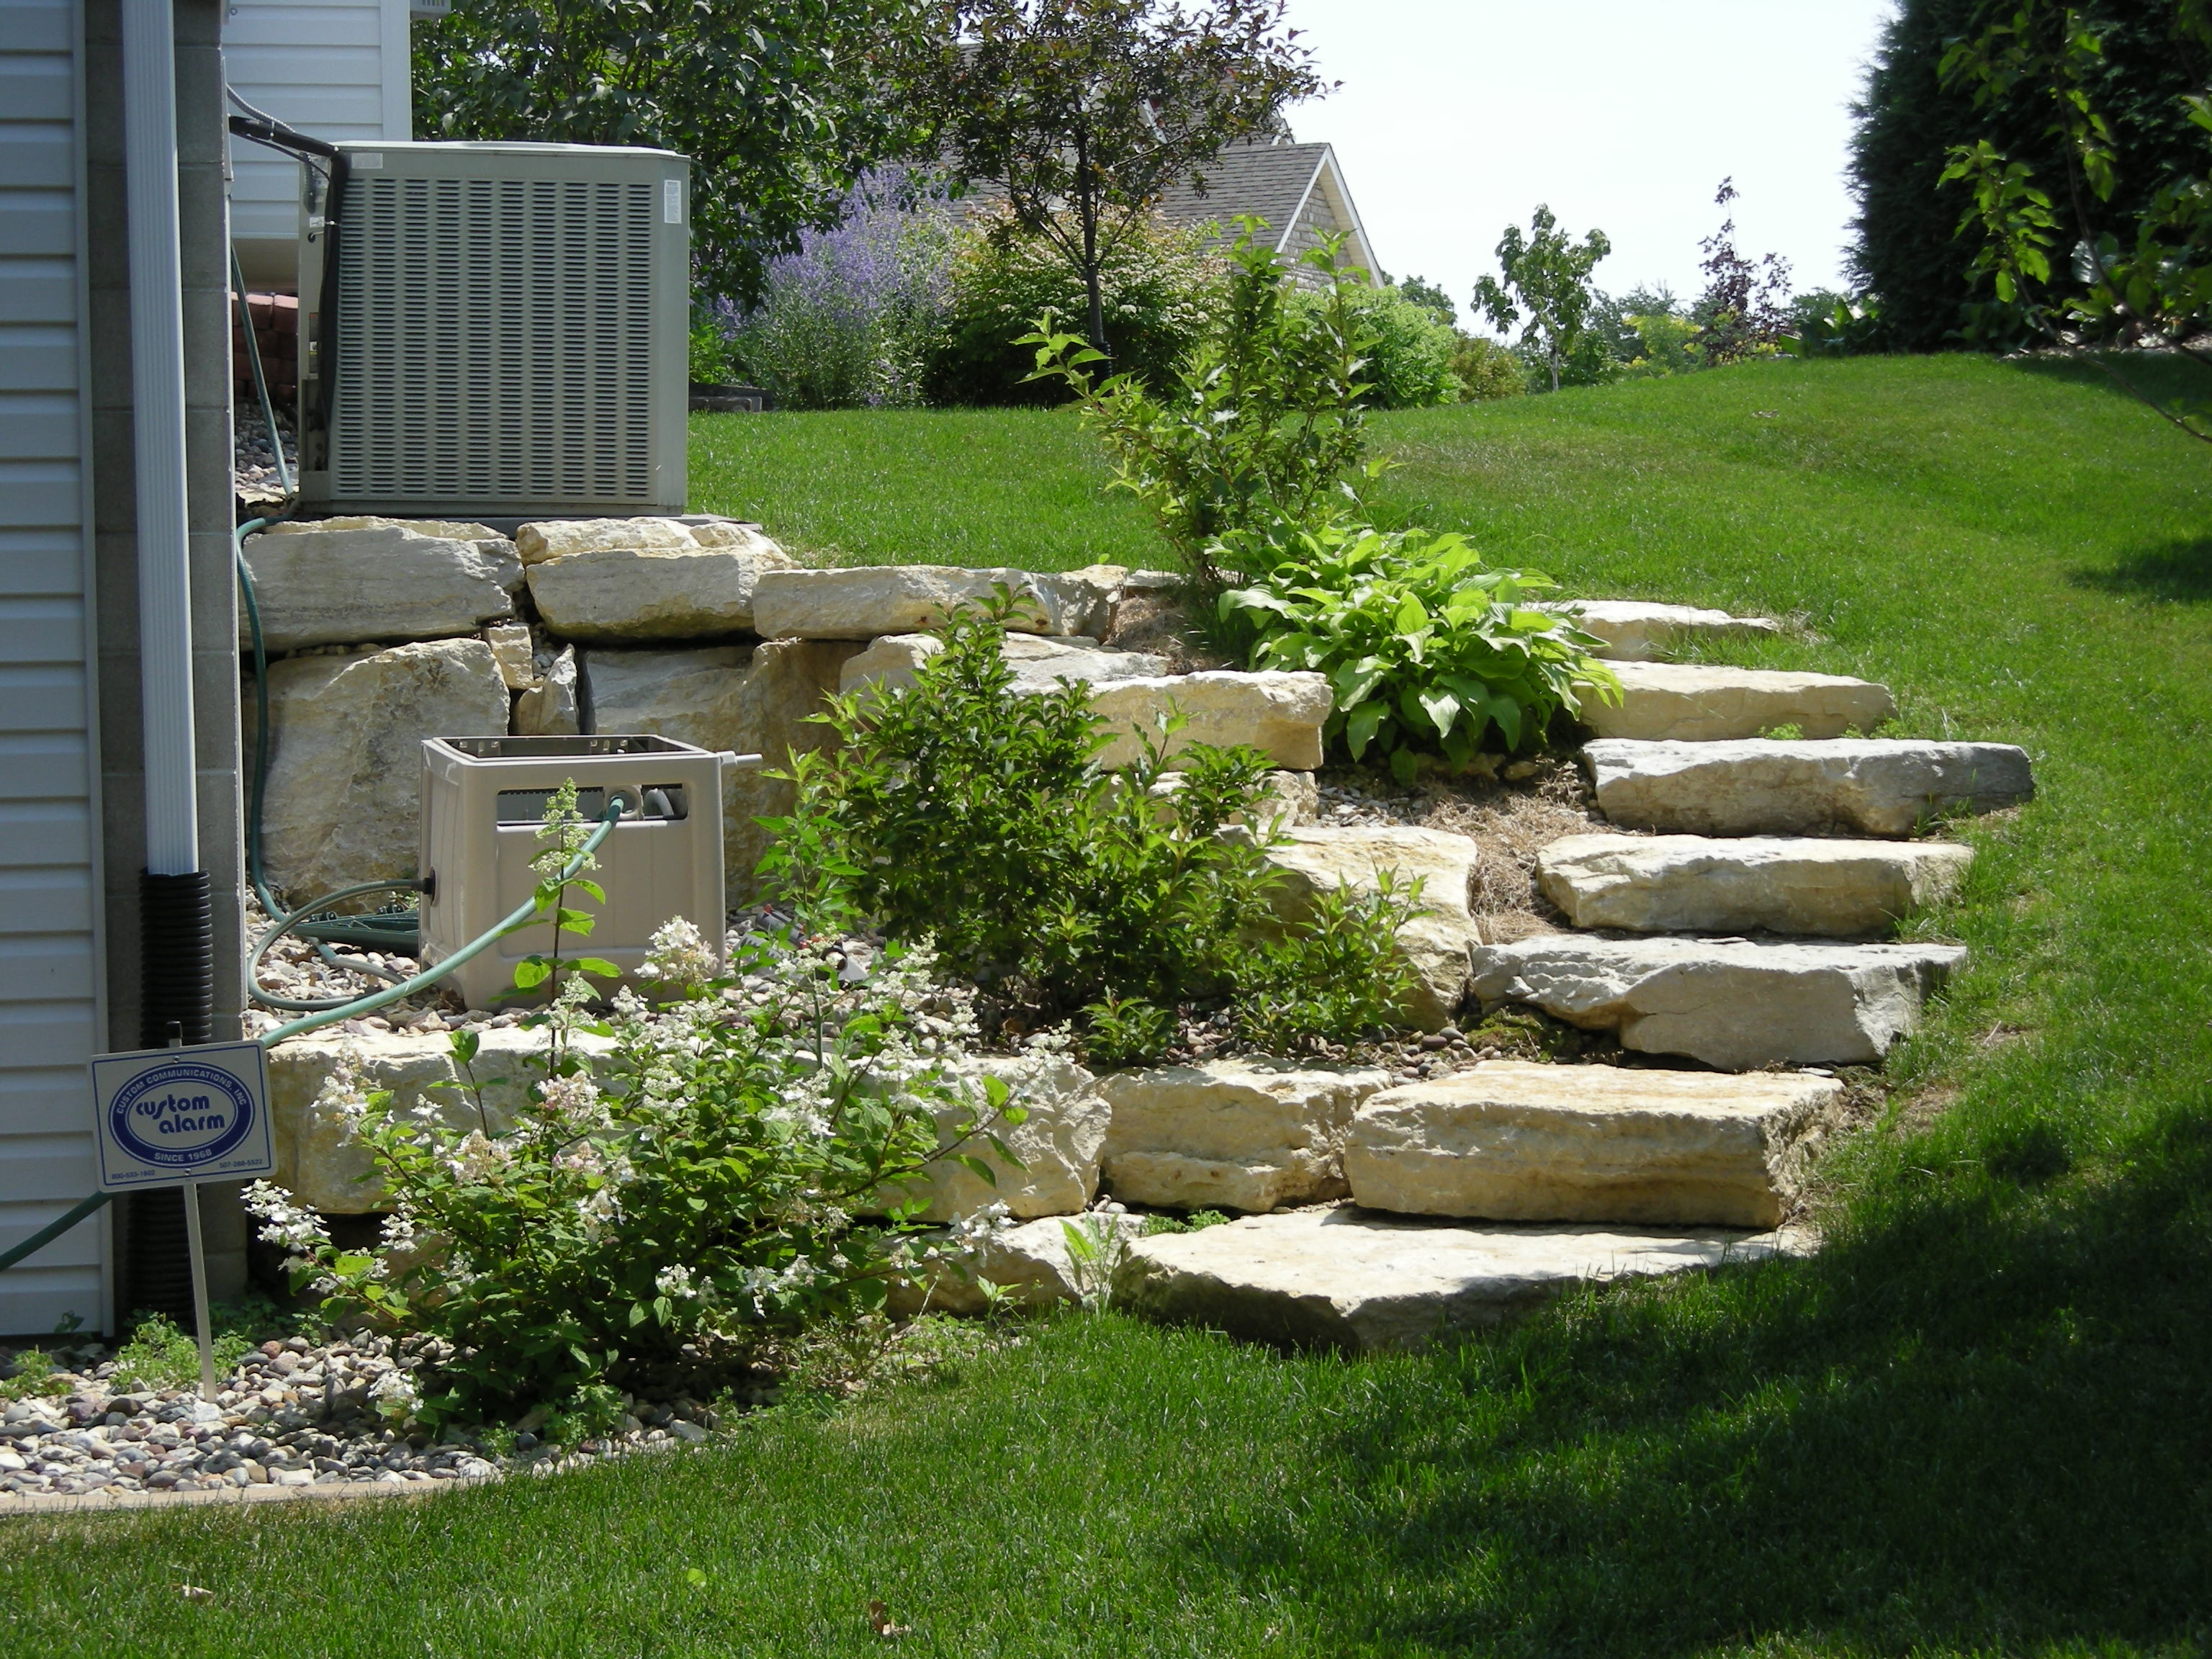 Landscape Designs for Hilly or Sloping Yards - Badger Land ... on Backyard With Slope Ideas  id=51237